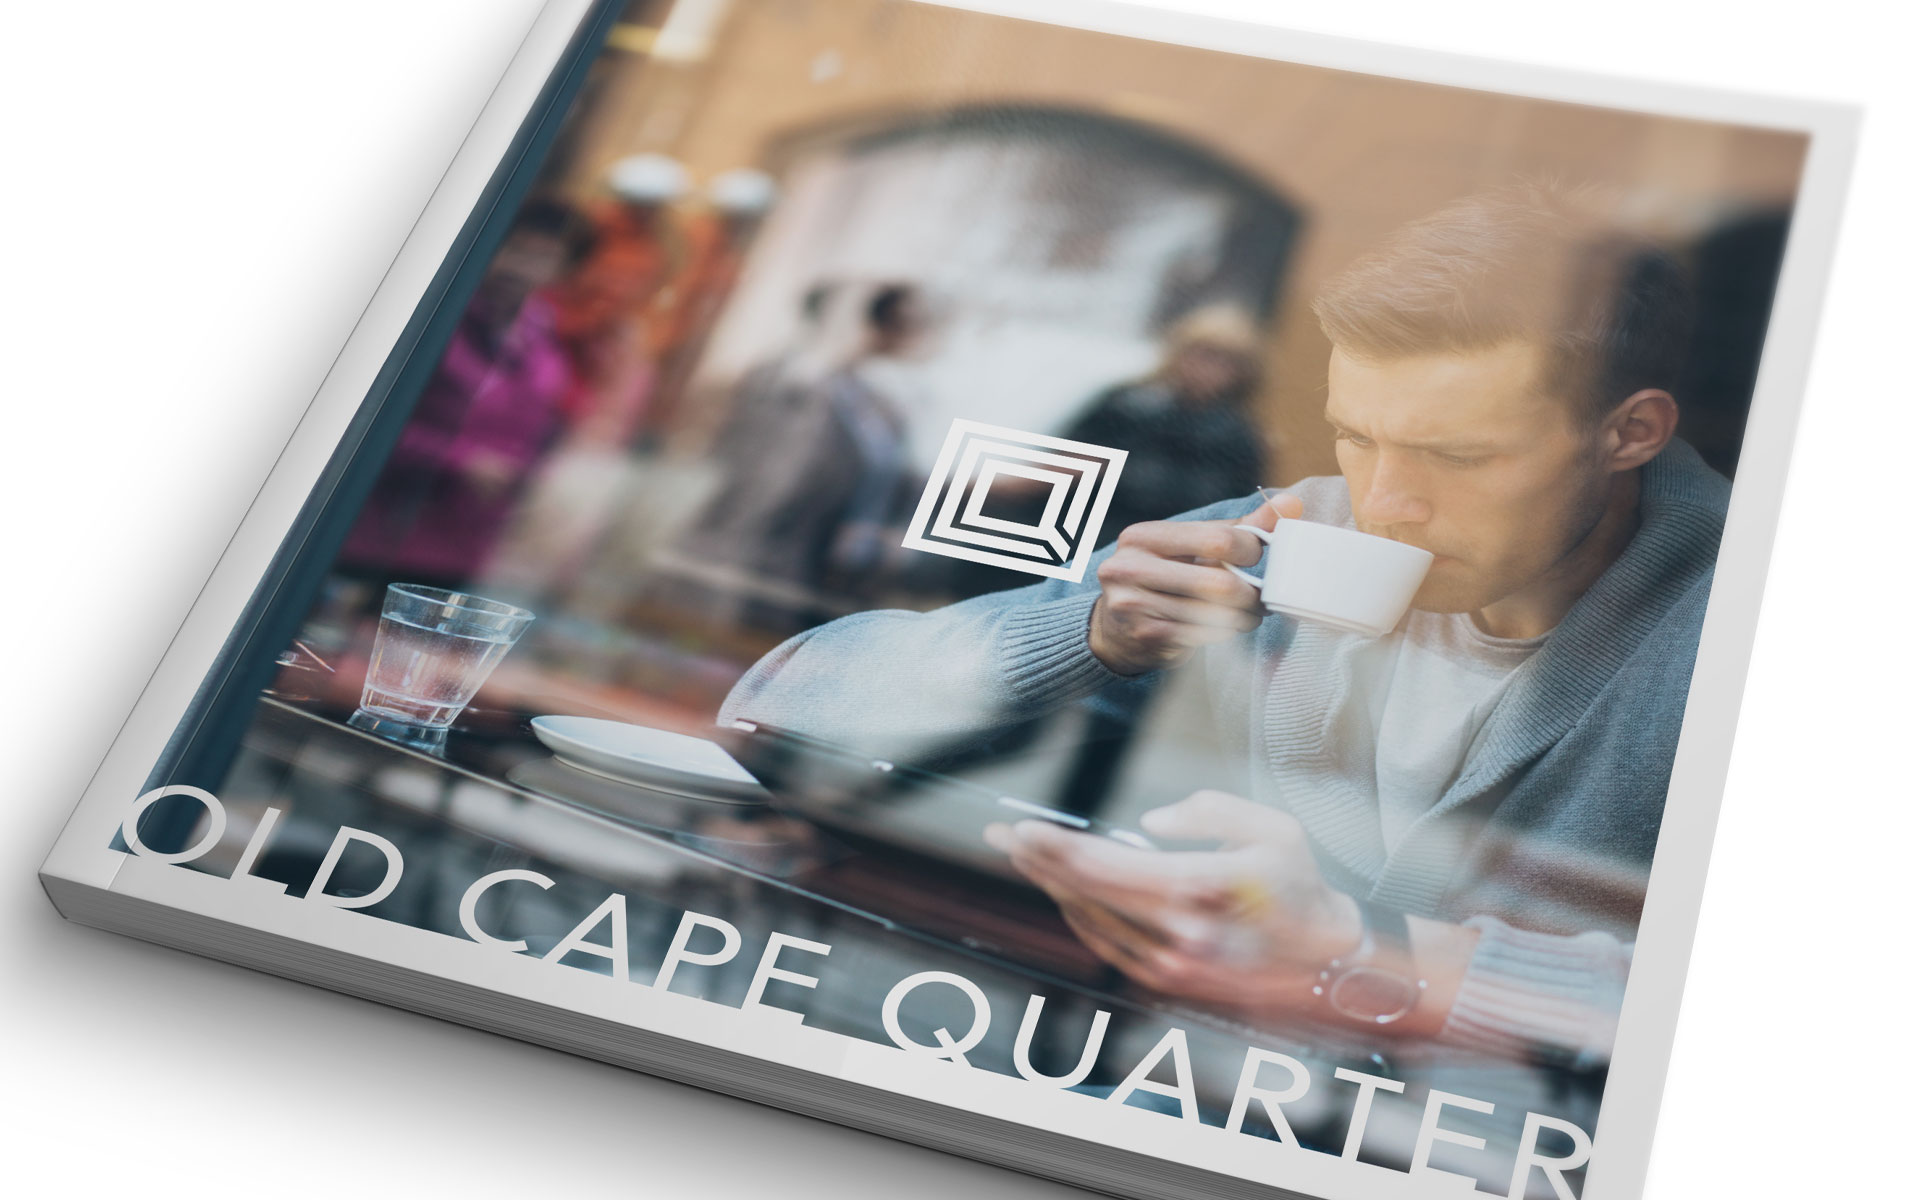 Old Cape Quarter sales and marketing brochure property marketing